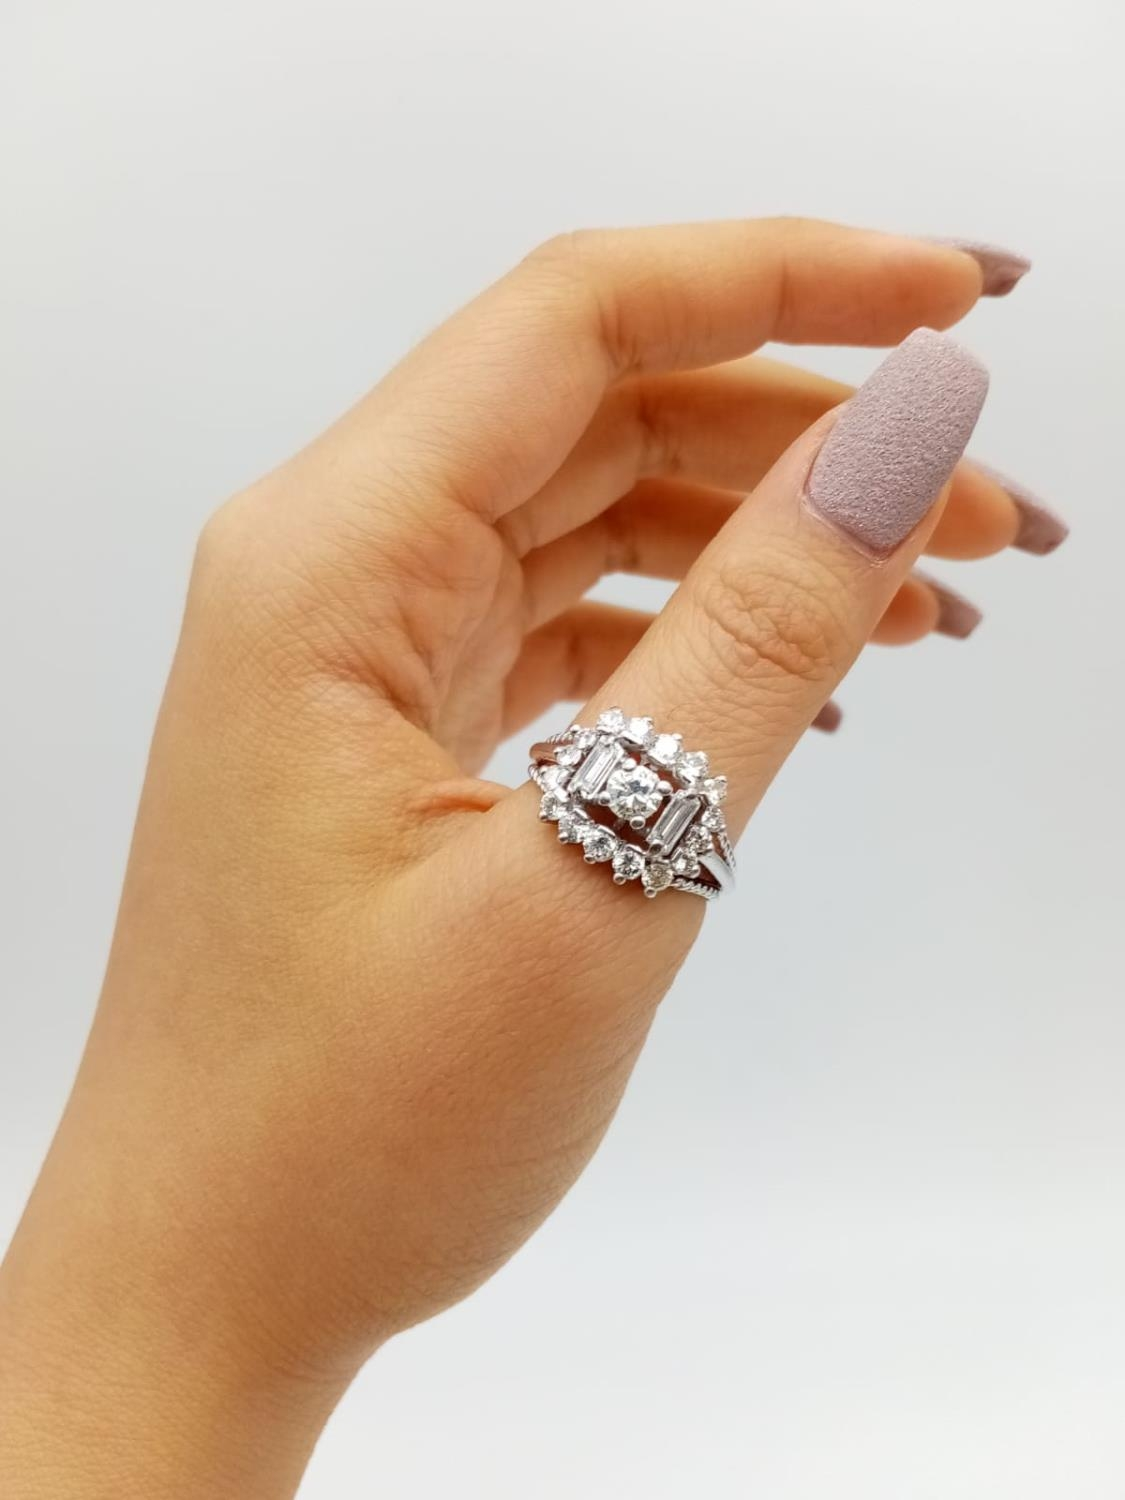 18k white gold diamond ring, WEIGHT 7.6G with over approx 2ct of top quality diamonds, size N1/2 - Image 5 of 6